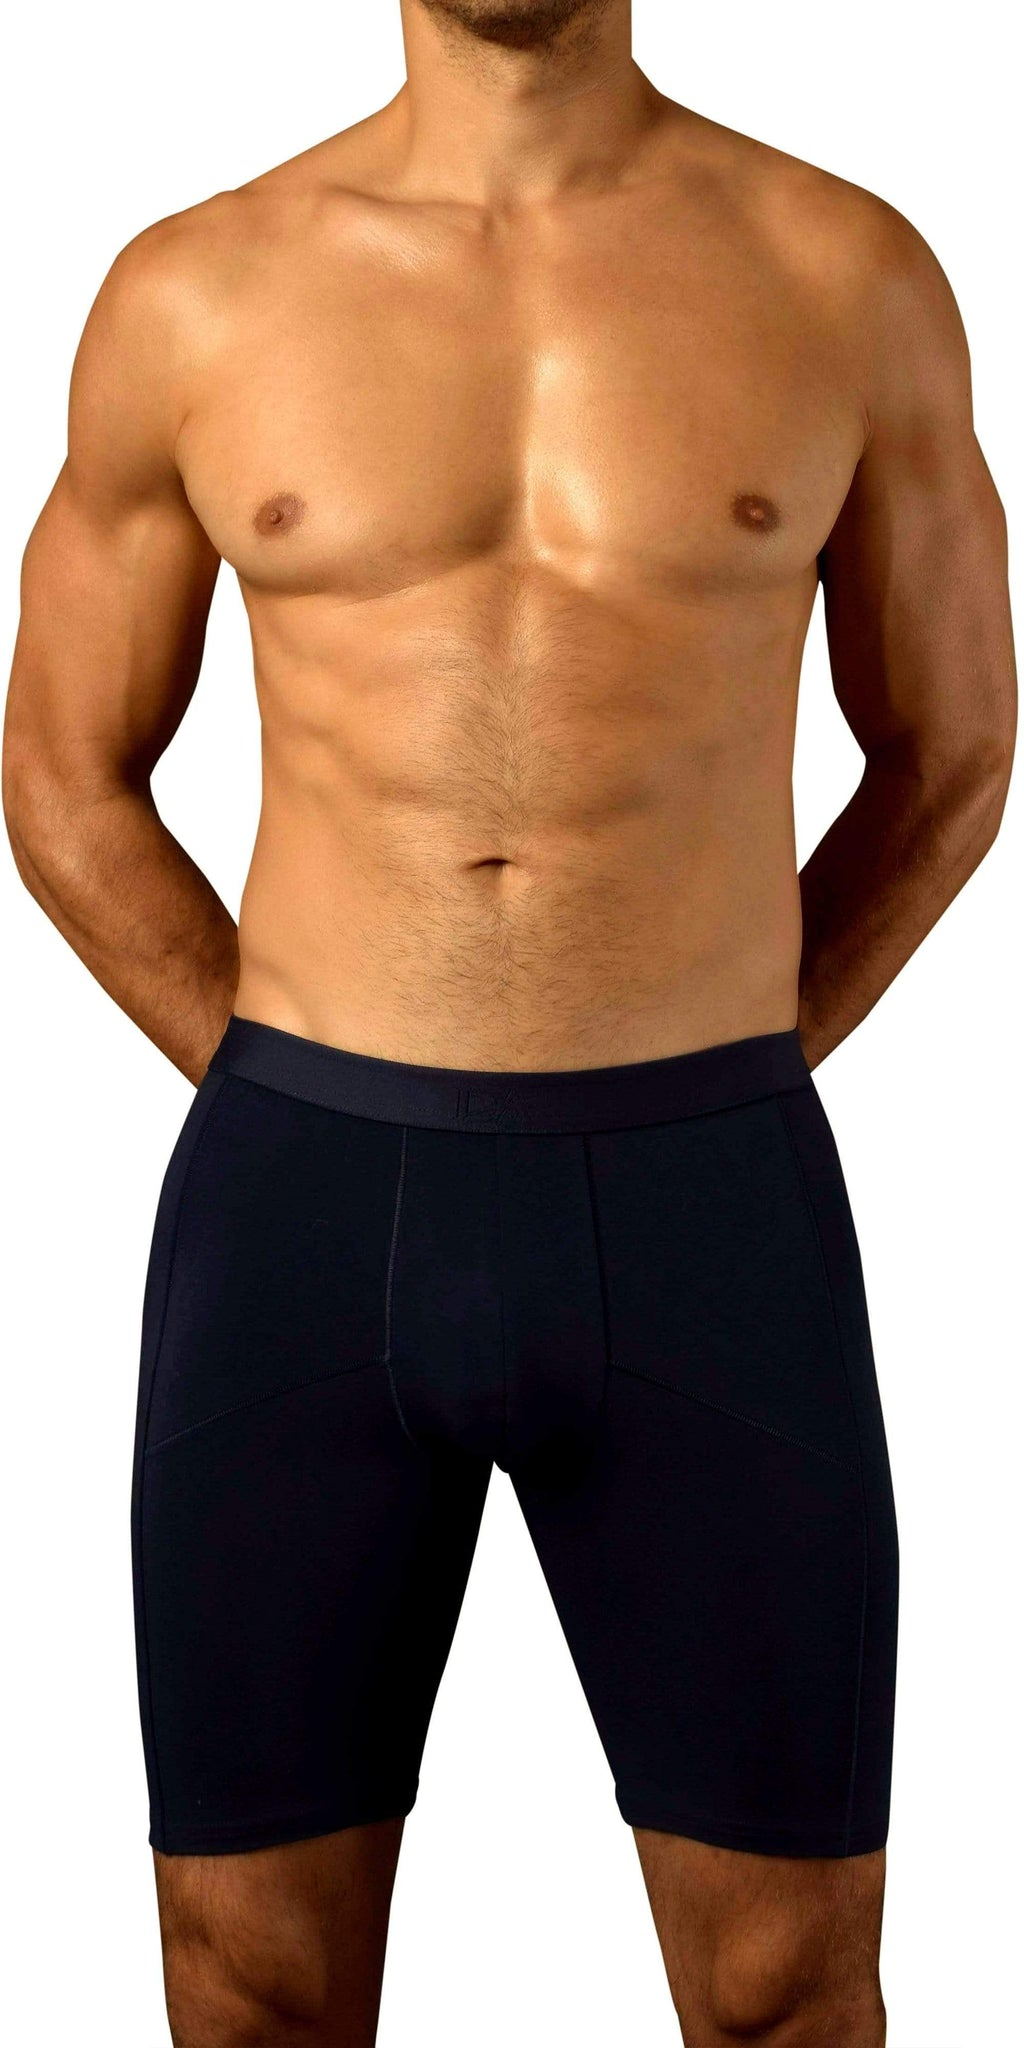 DOREANSE 1792 Athletic Boxer Brief in Indigo Navy